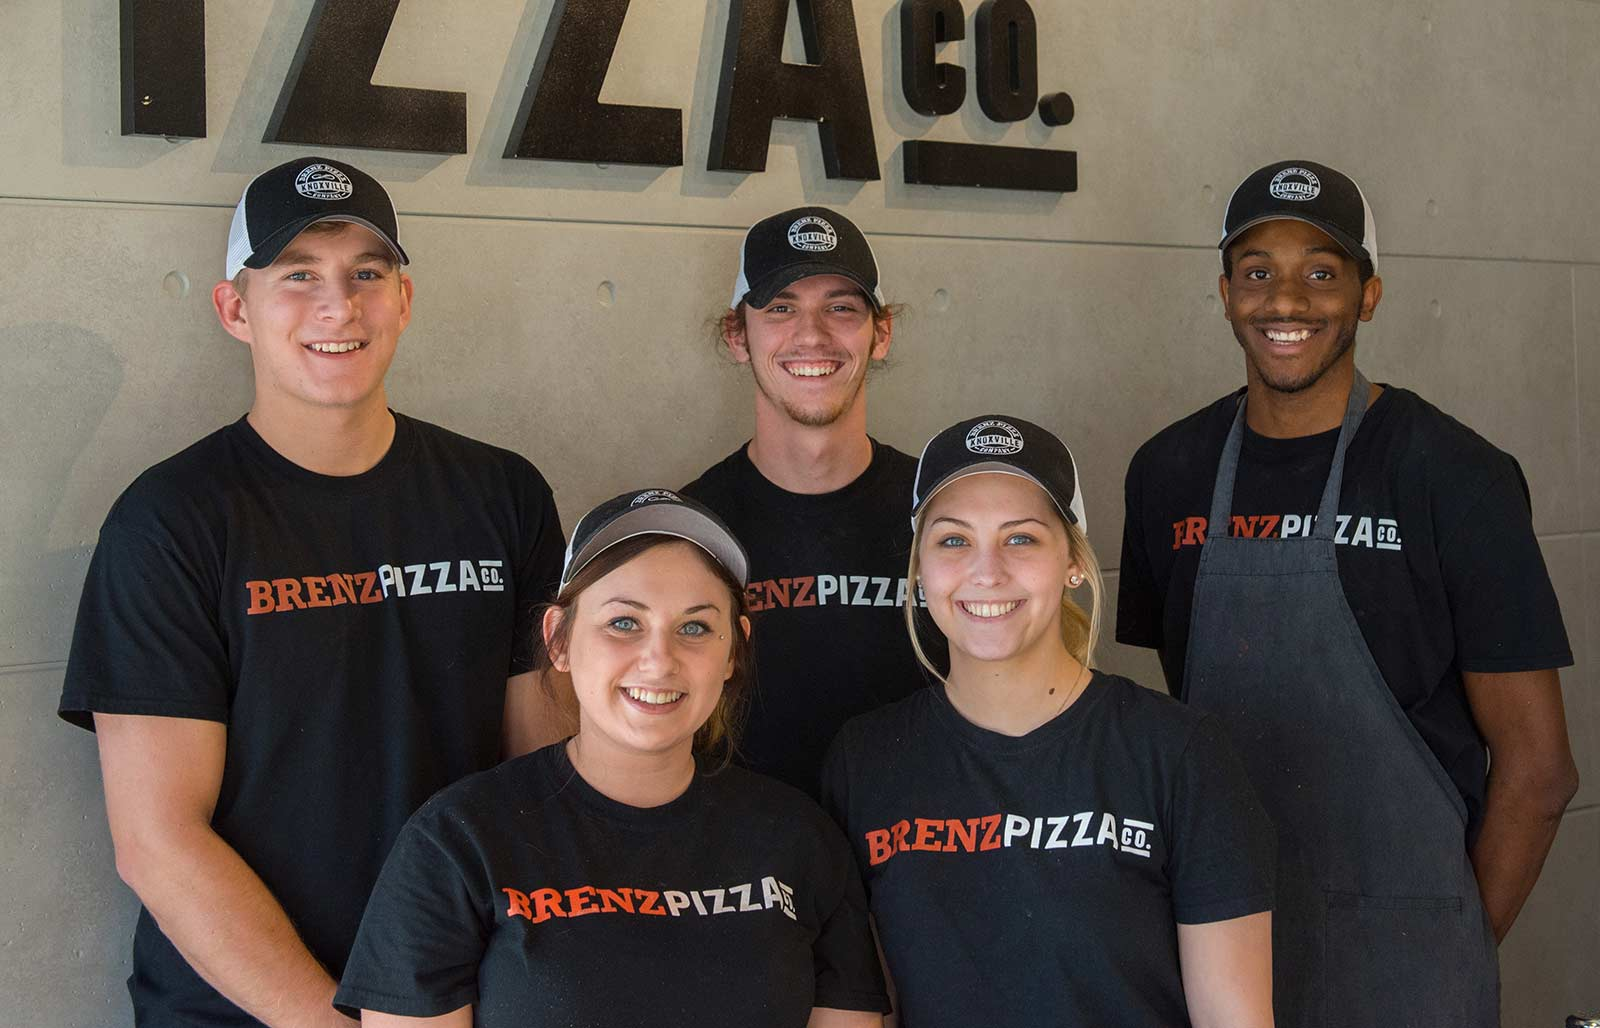 Brenz pizza employees